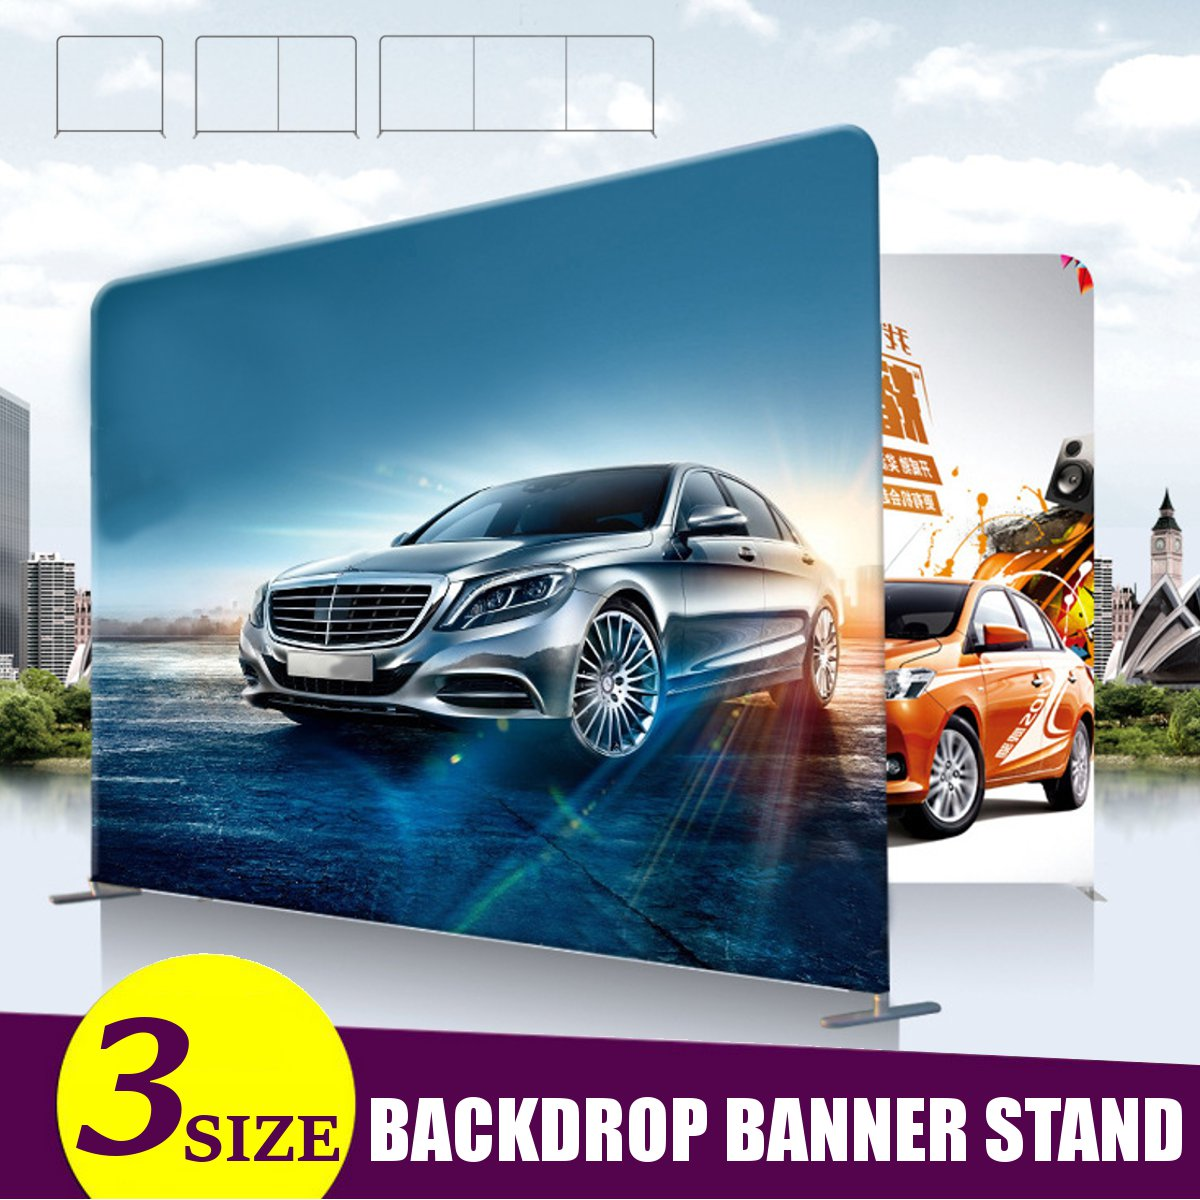 Portable Aluminum Alloy Banner Stand Party Wedding Wall Frame Backdrop Display Holder Folding Presentation Advertising Stands